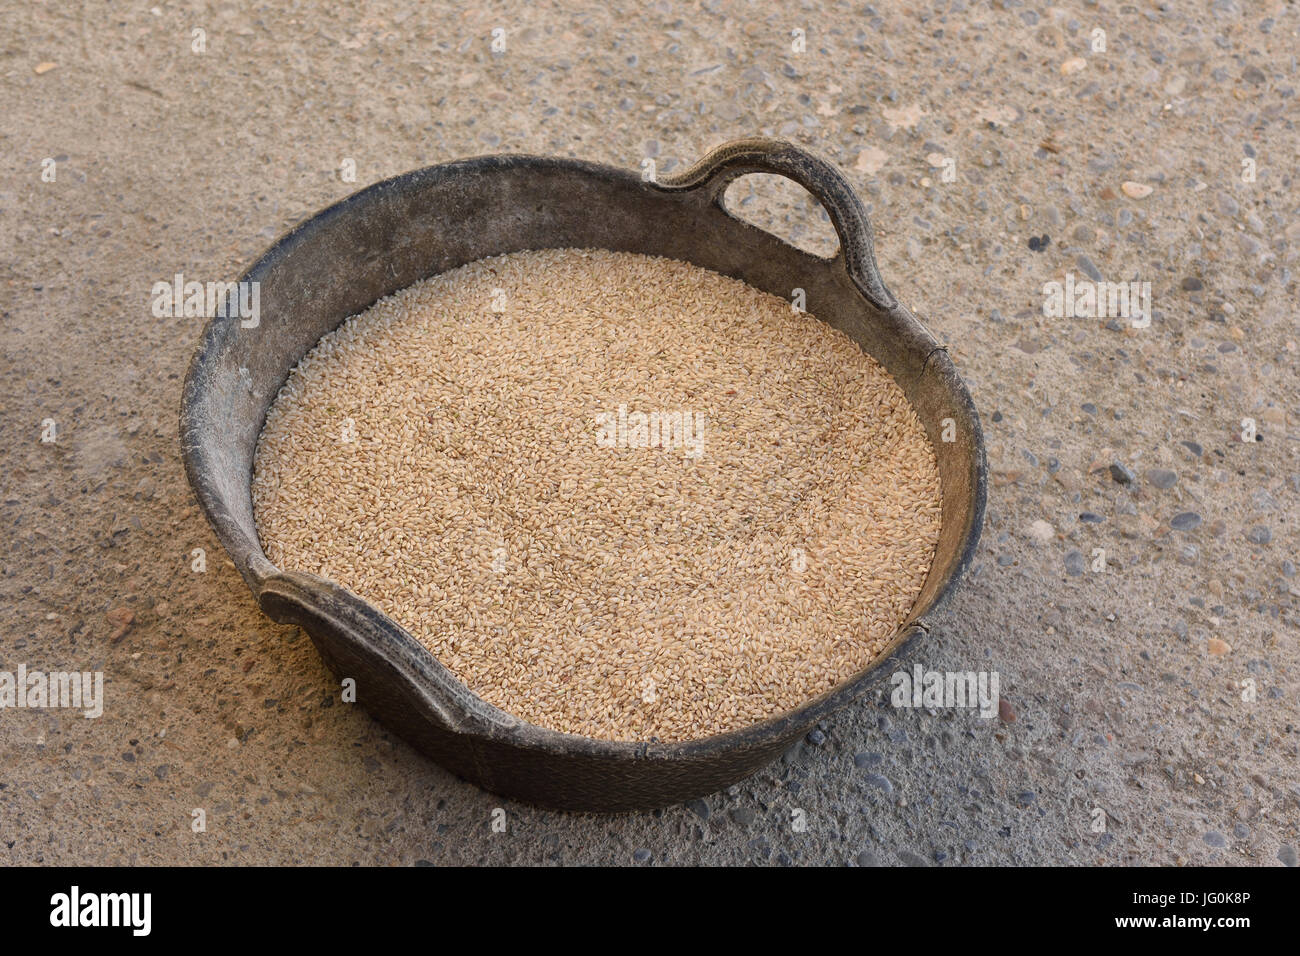 Rice from Pals Girona privince,Catalonia,Spain Stock Photo